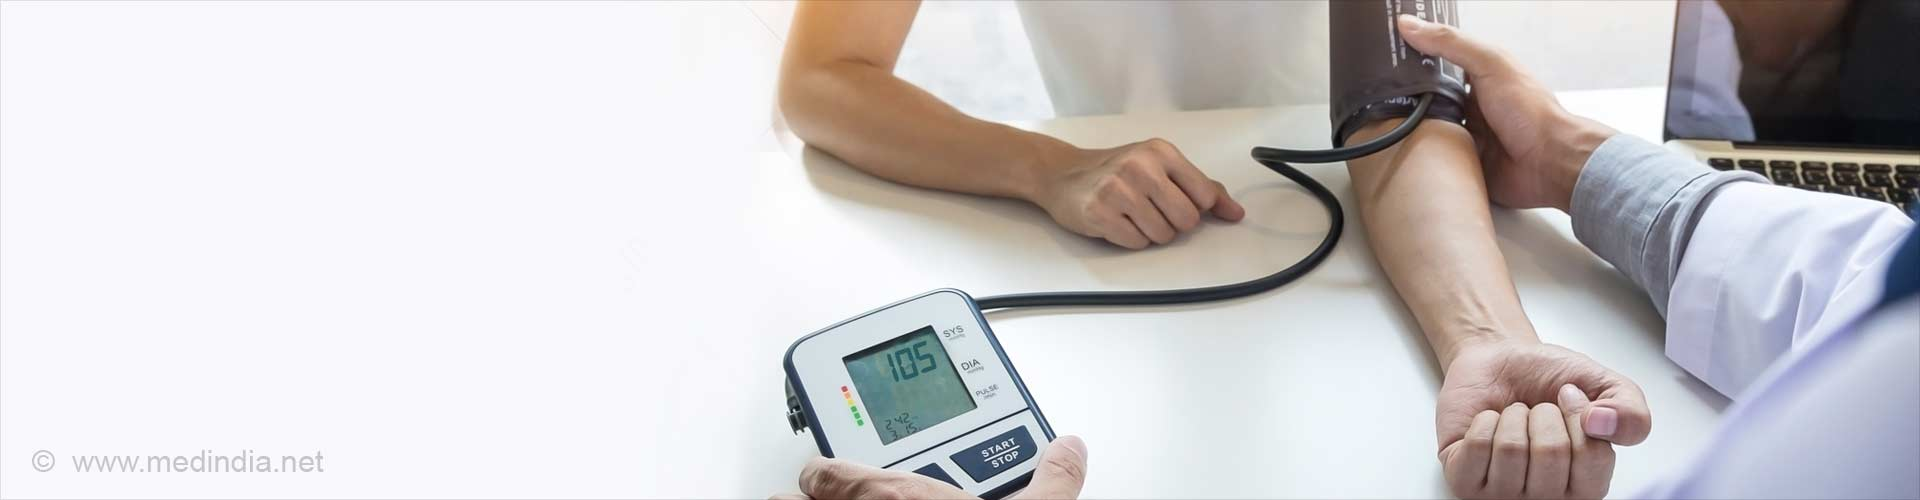 High Blood Pressure | Hypertension - Causes, Symptoms